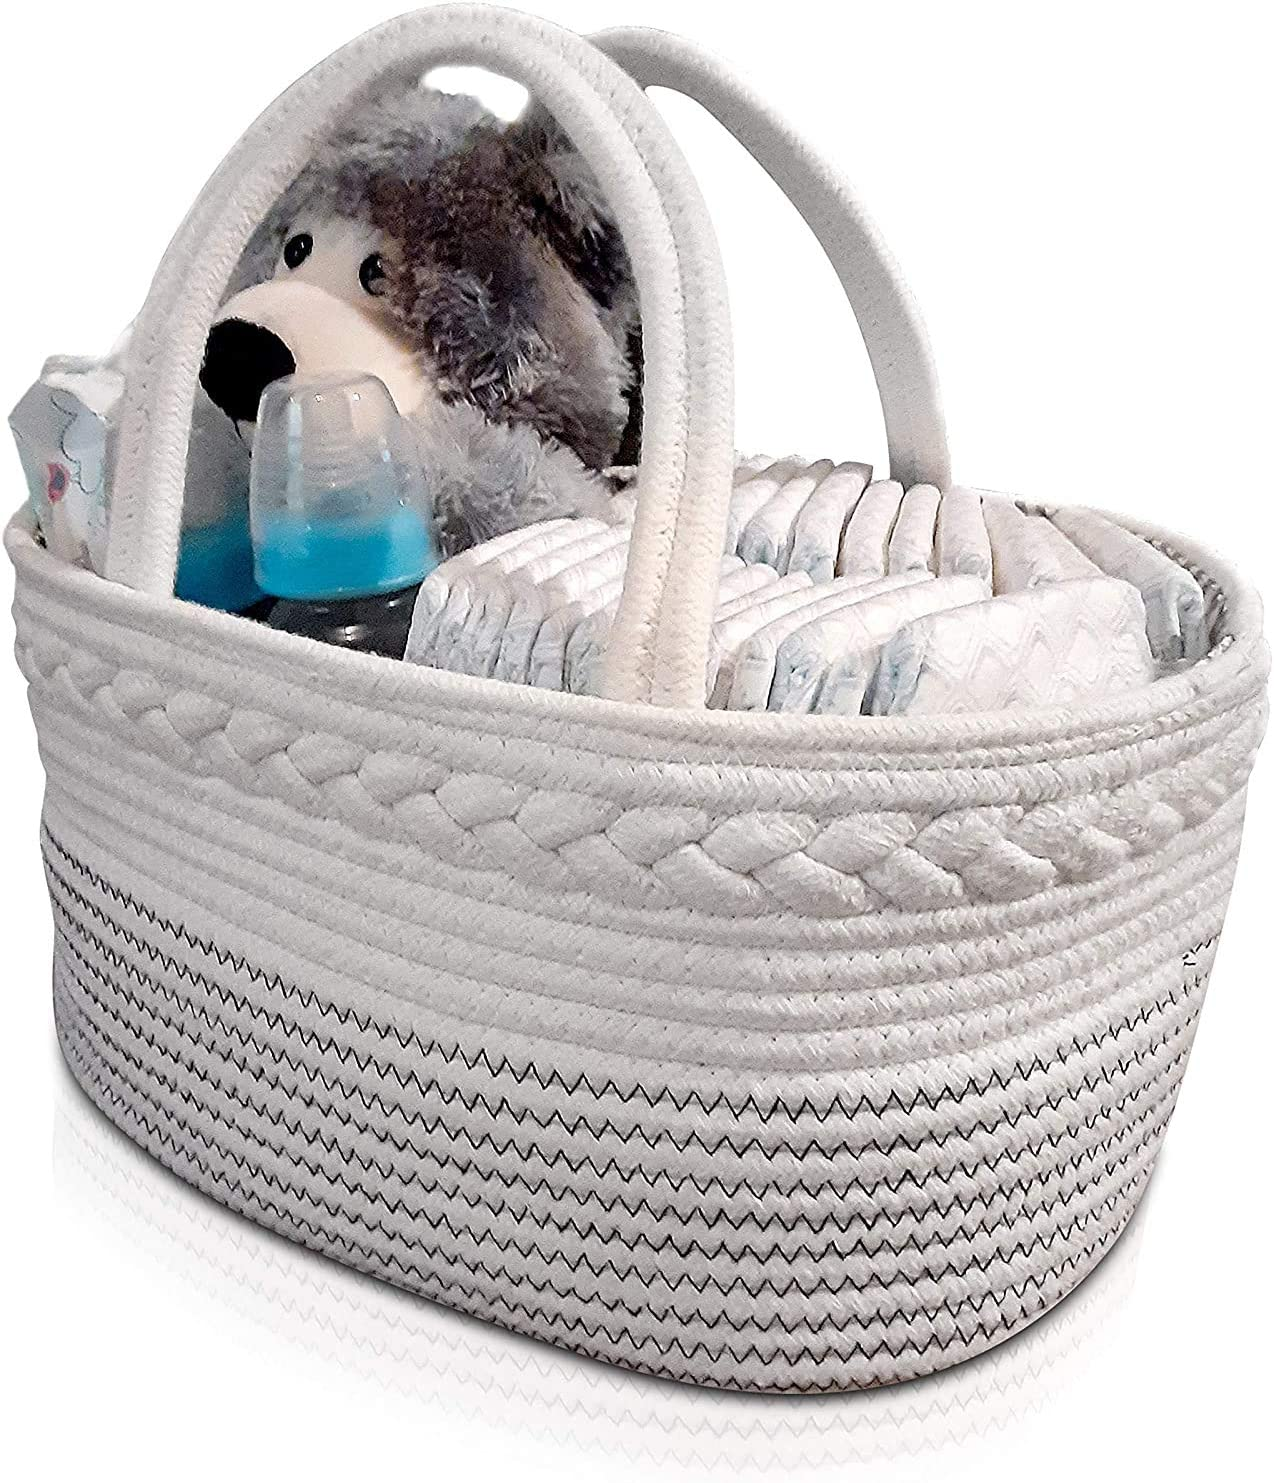 Baby Max 42% OFF Diaper Caddy - Shower Gift Nursery Bin Storage Basket Animer and price revision